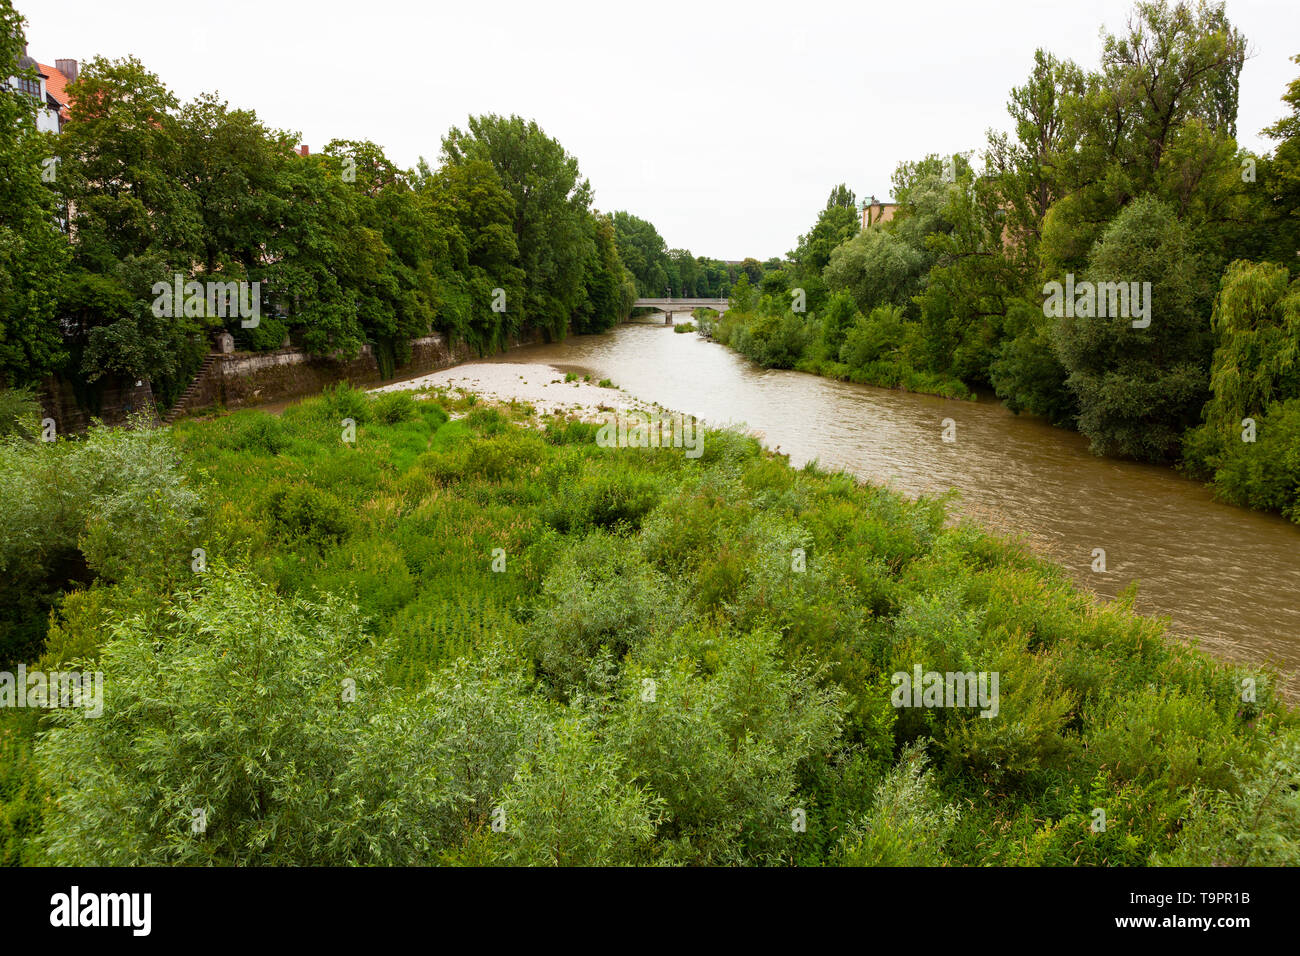 Isar River flowing through Munich, Germany - Stock Image